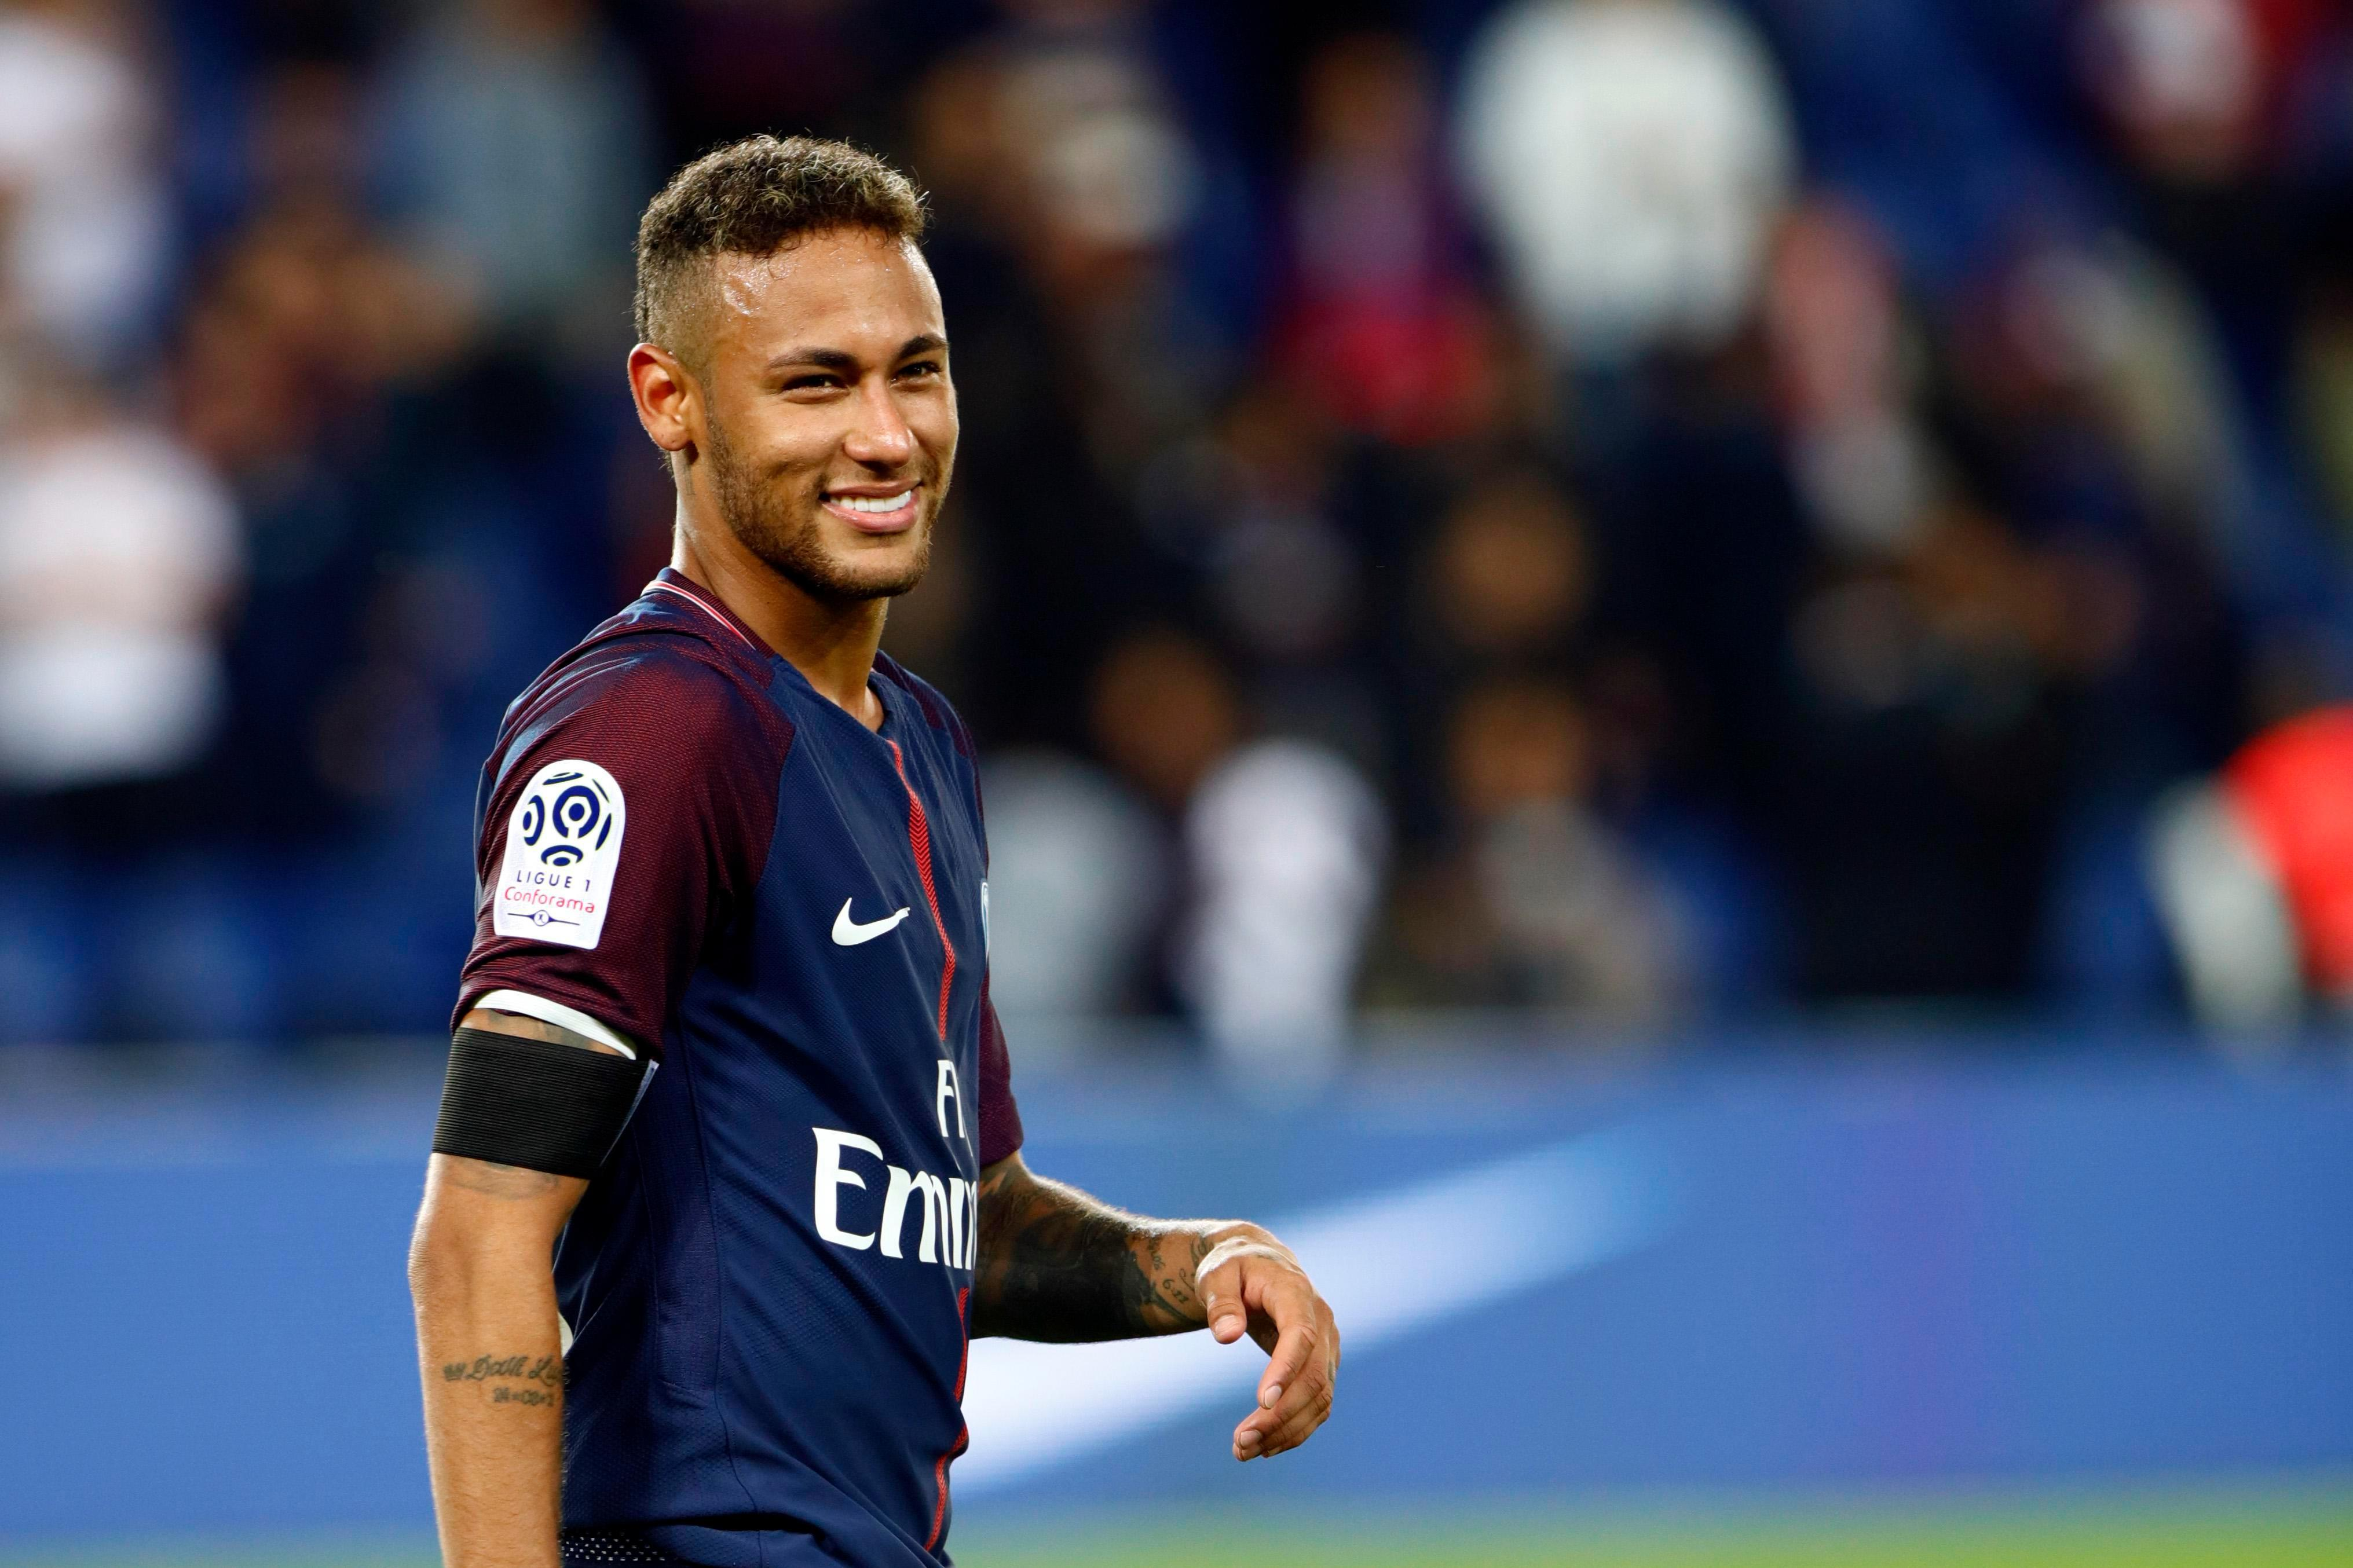 Barcelona are still searching for a replacement for Neymar